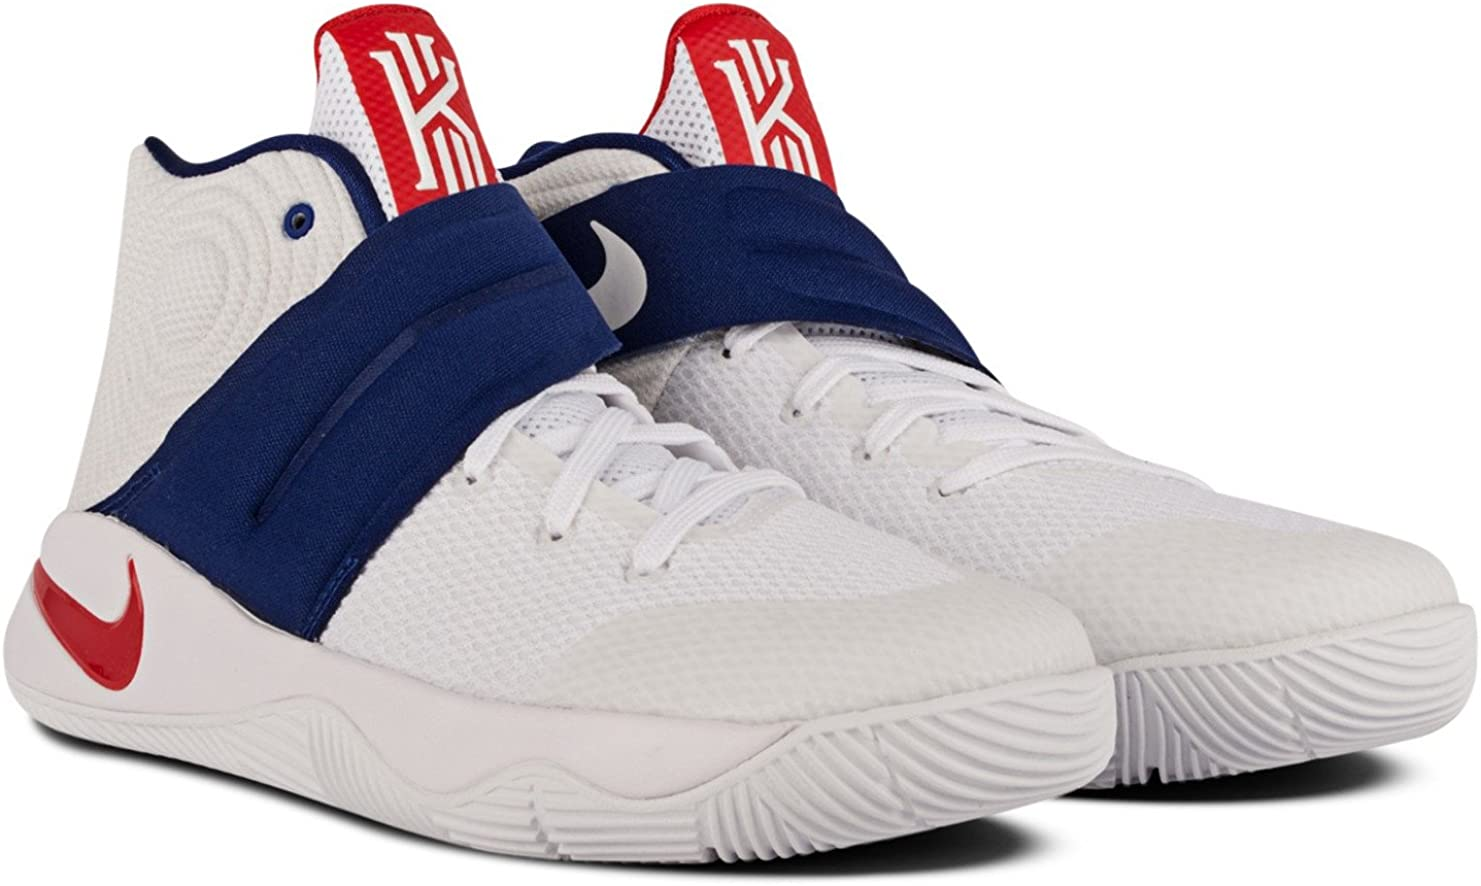 Size 5.5 Youth Nike Kyrie Irving 2